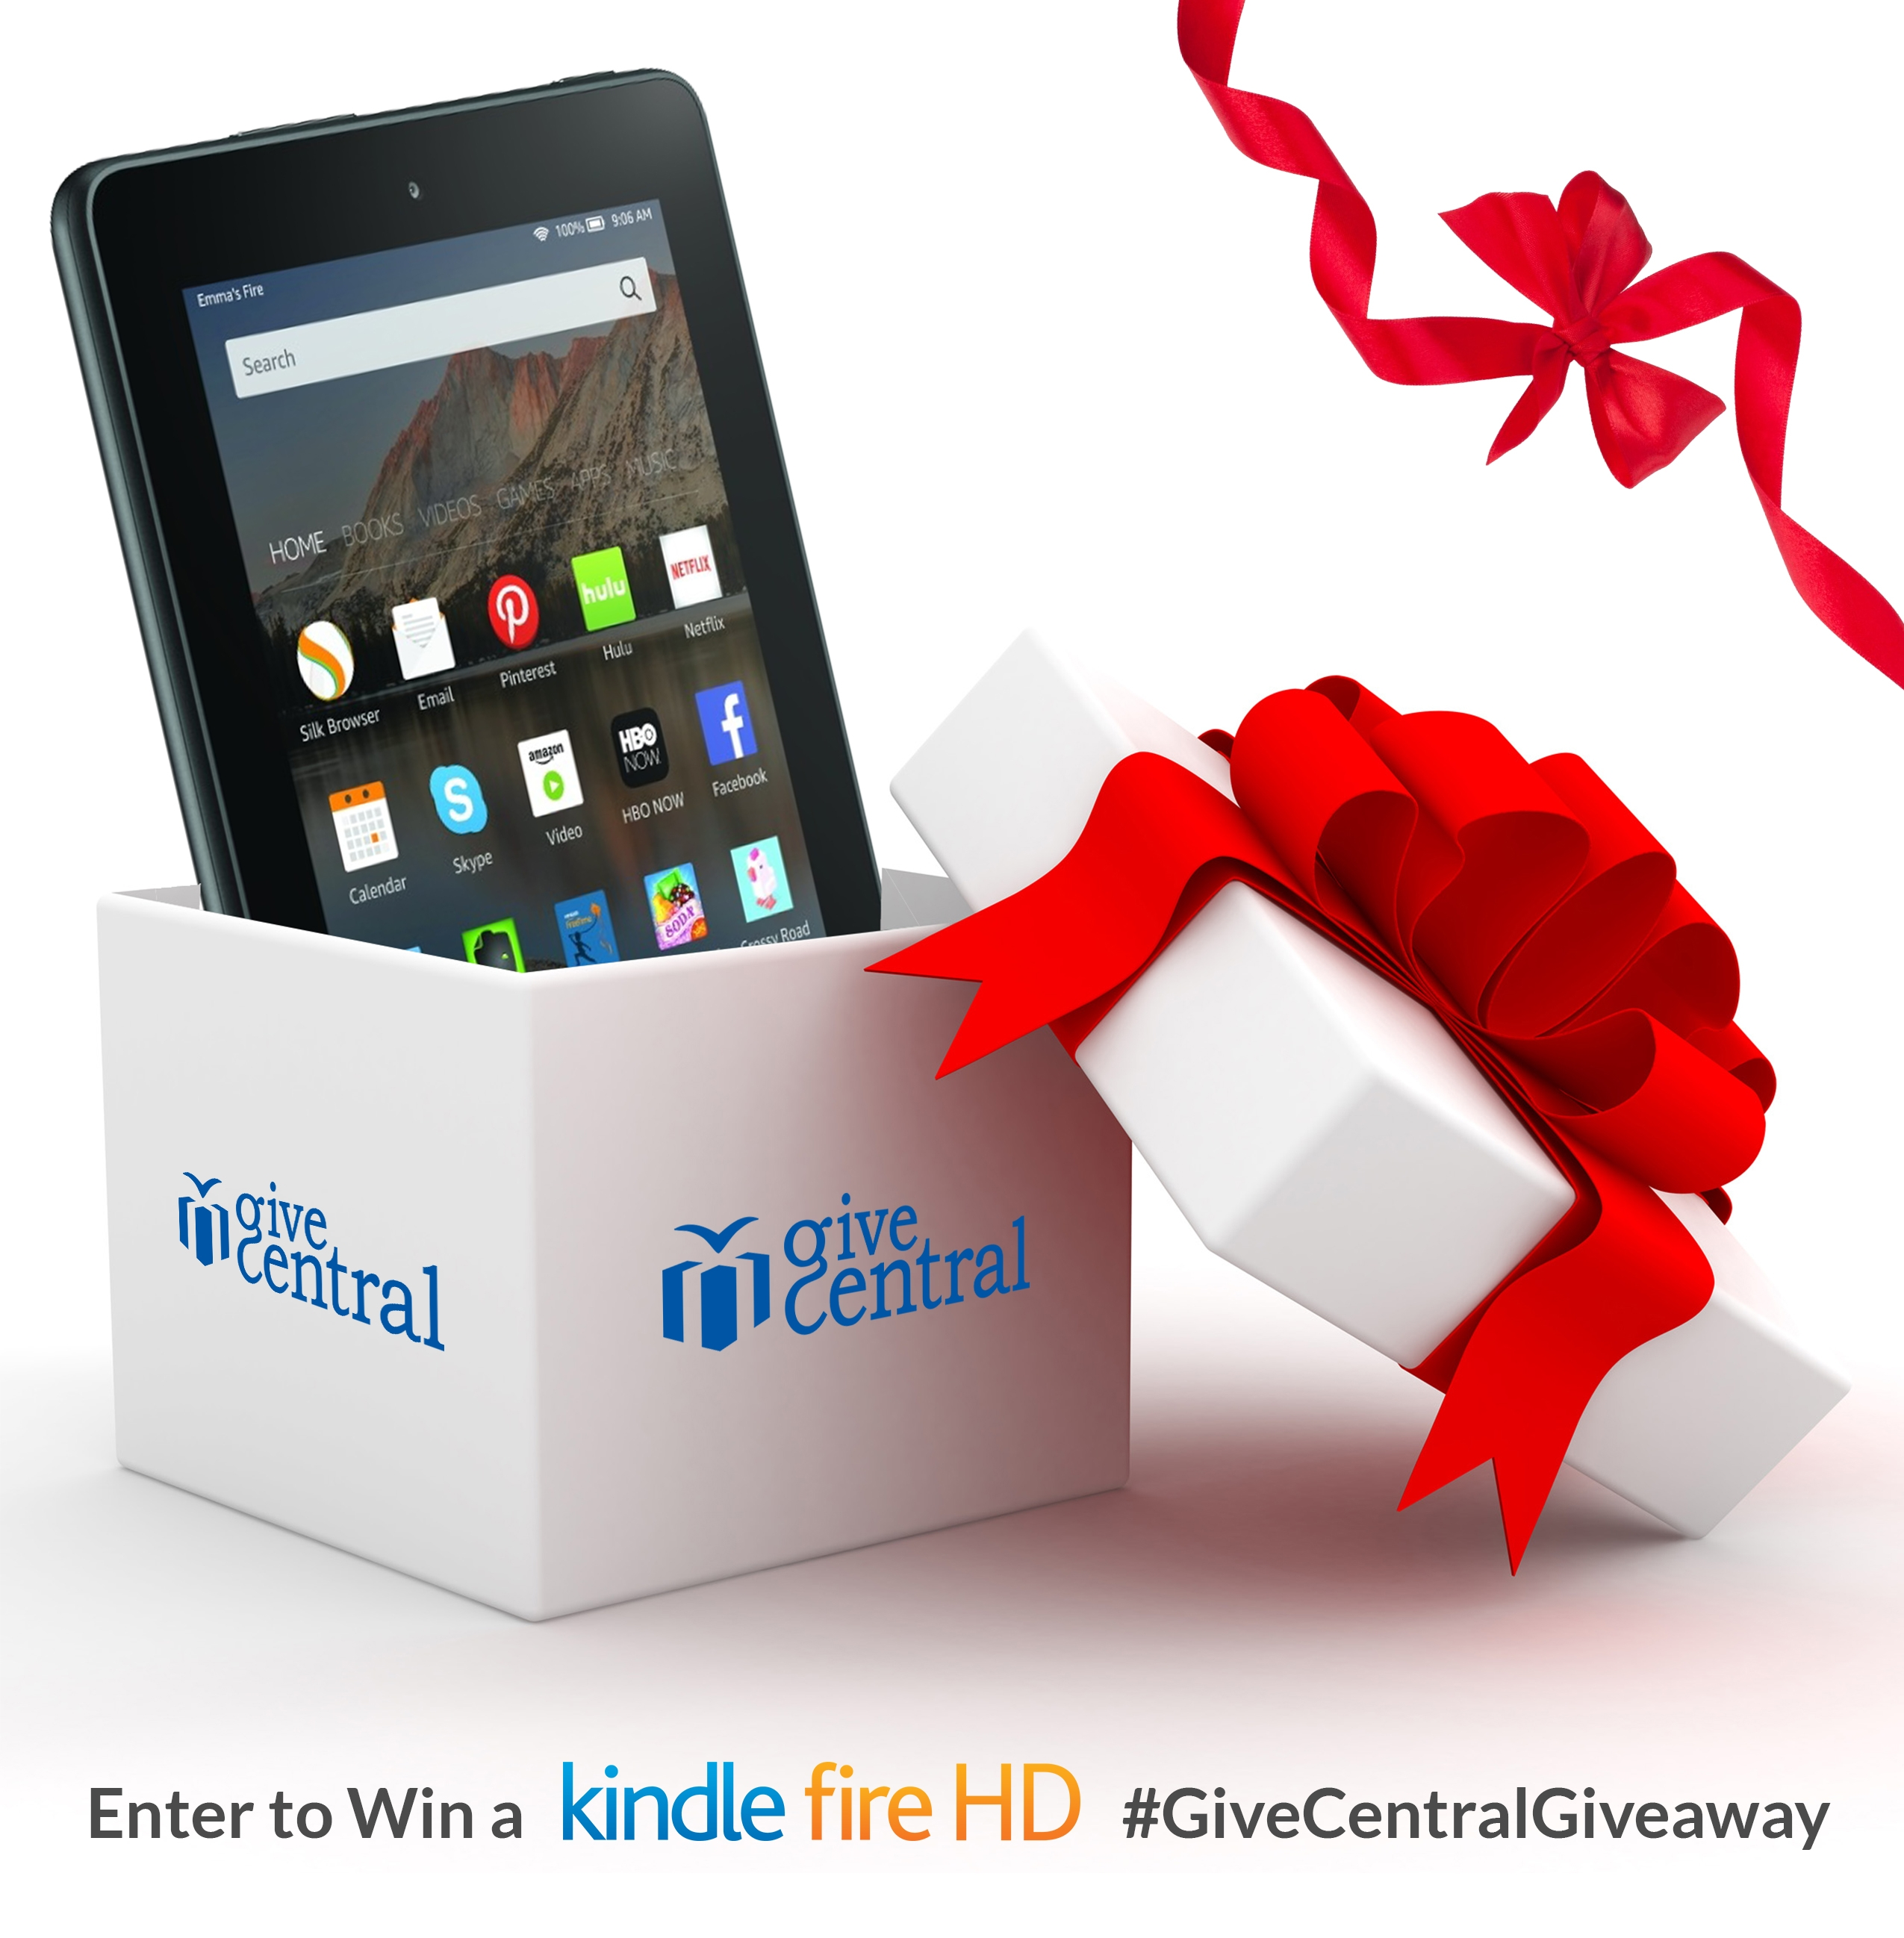 Amazon Kindle Giveaway! Christmas Sweepstakes